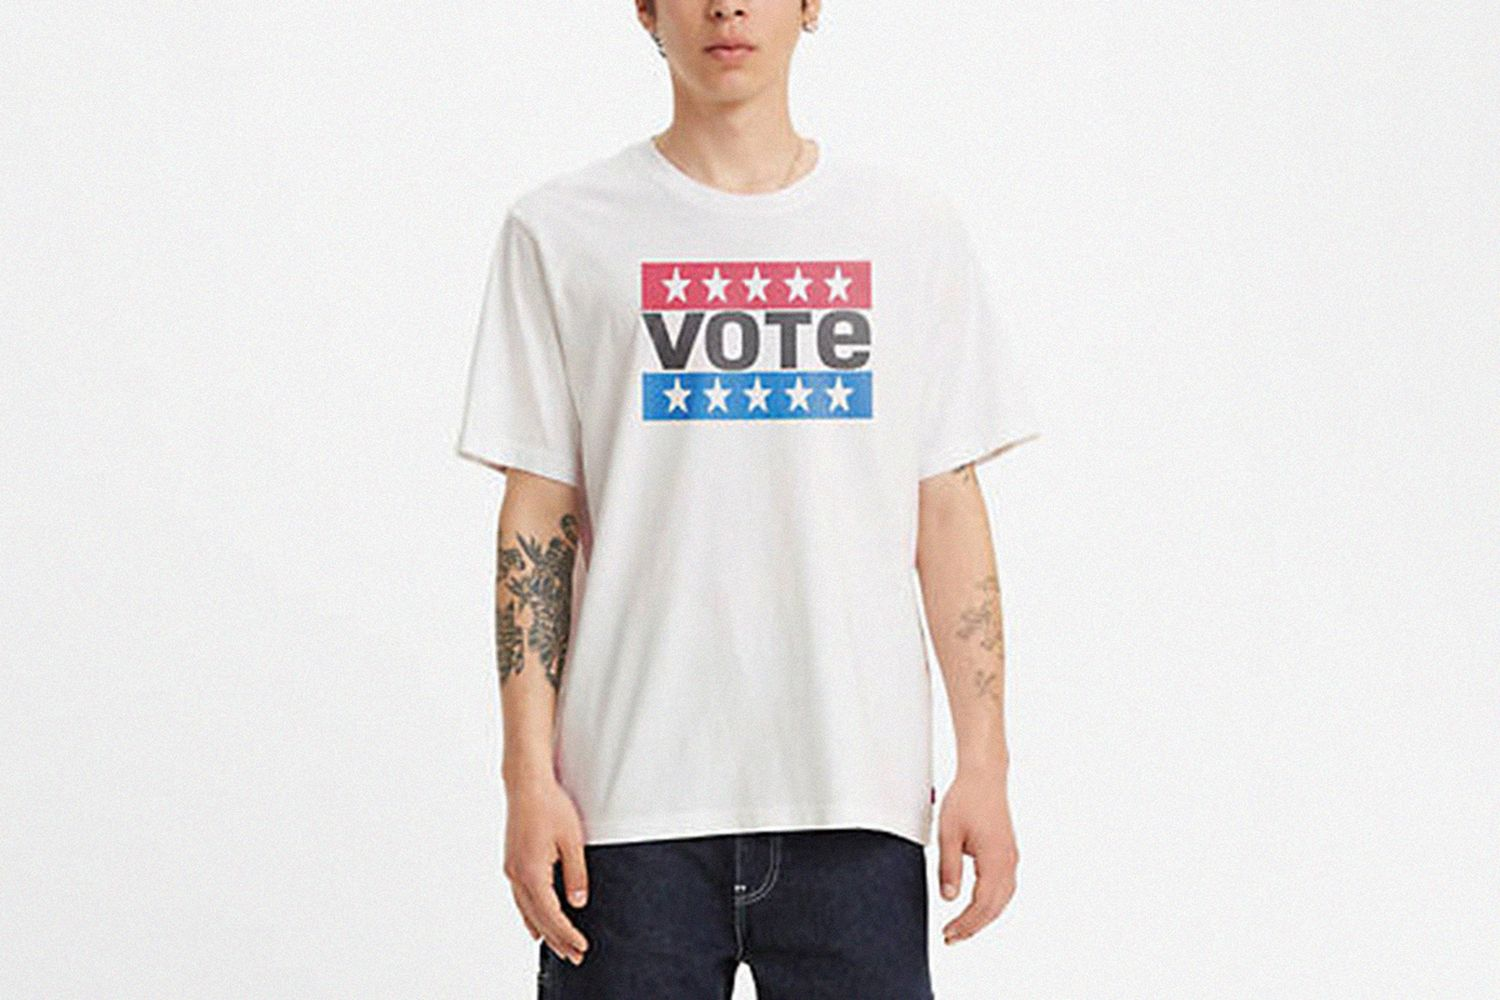 Vote Relaxed Fit Tee Shirt